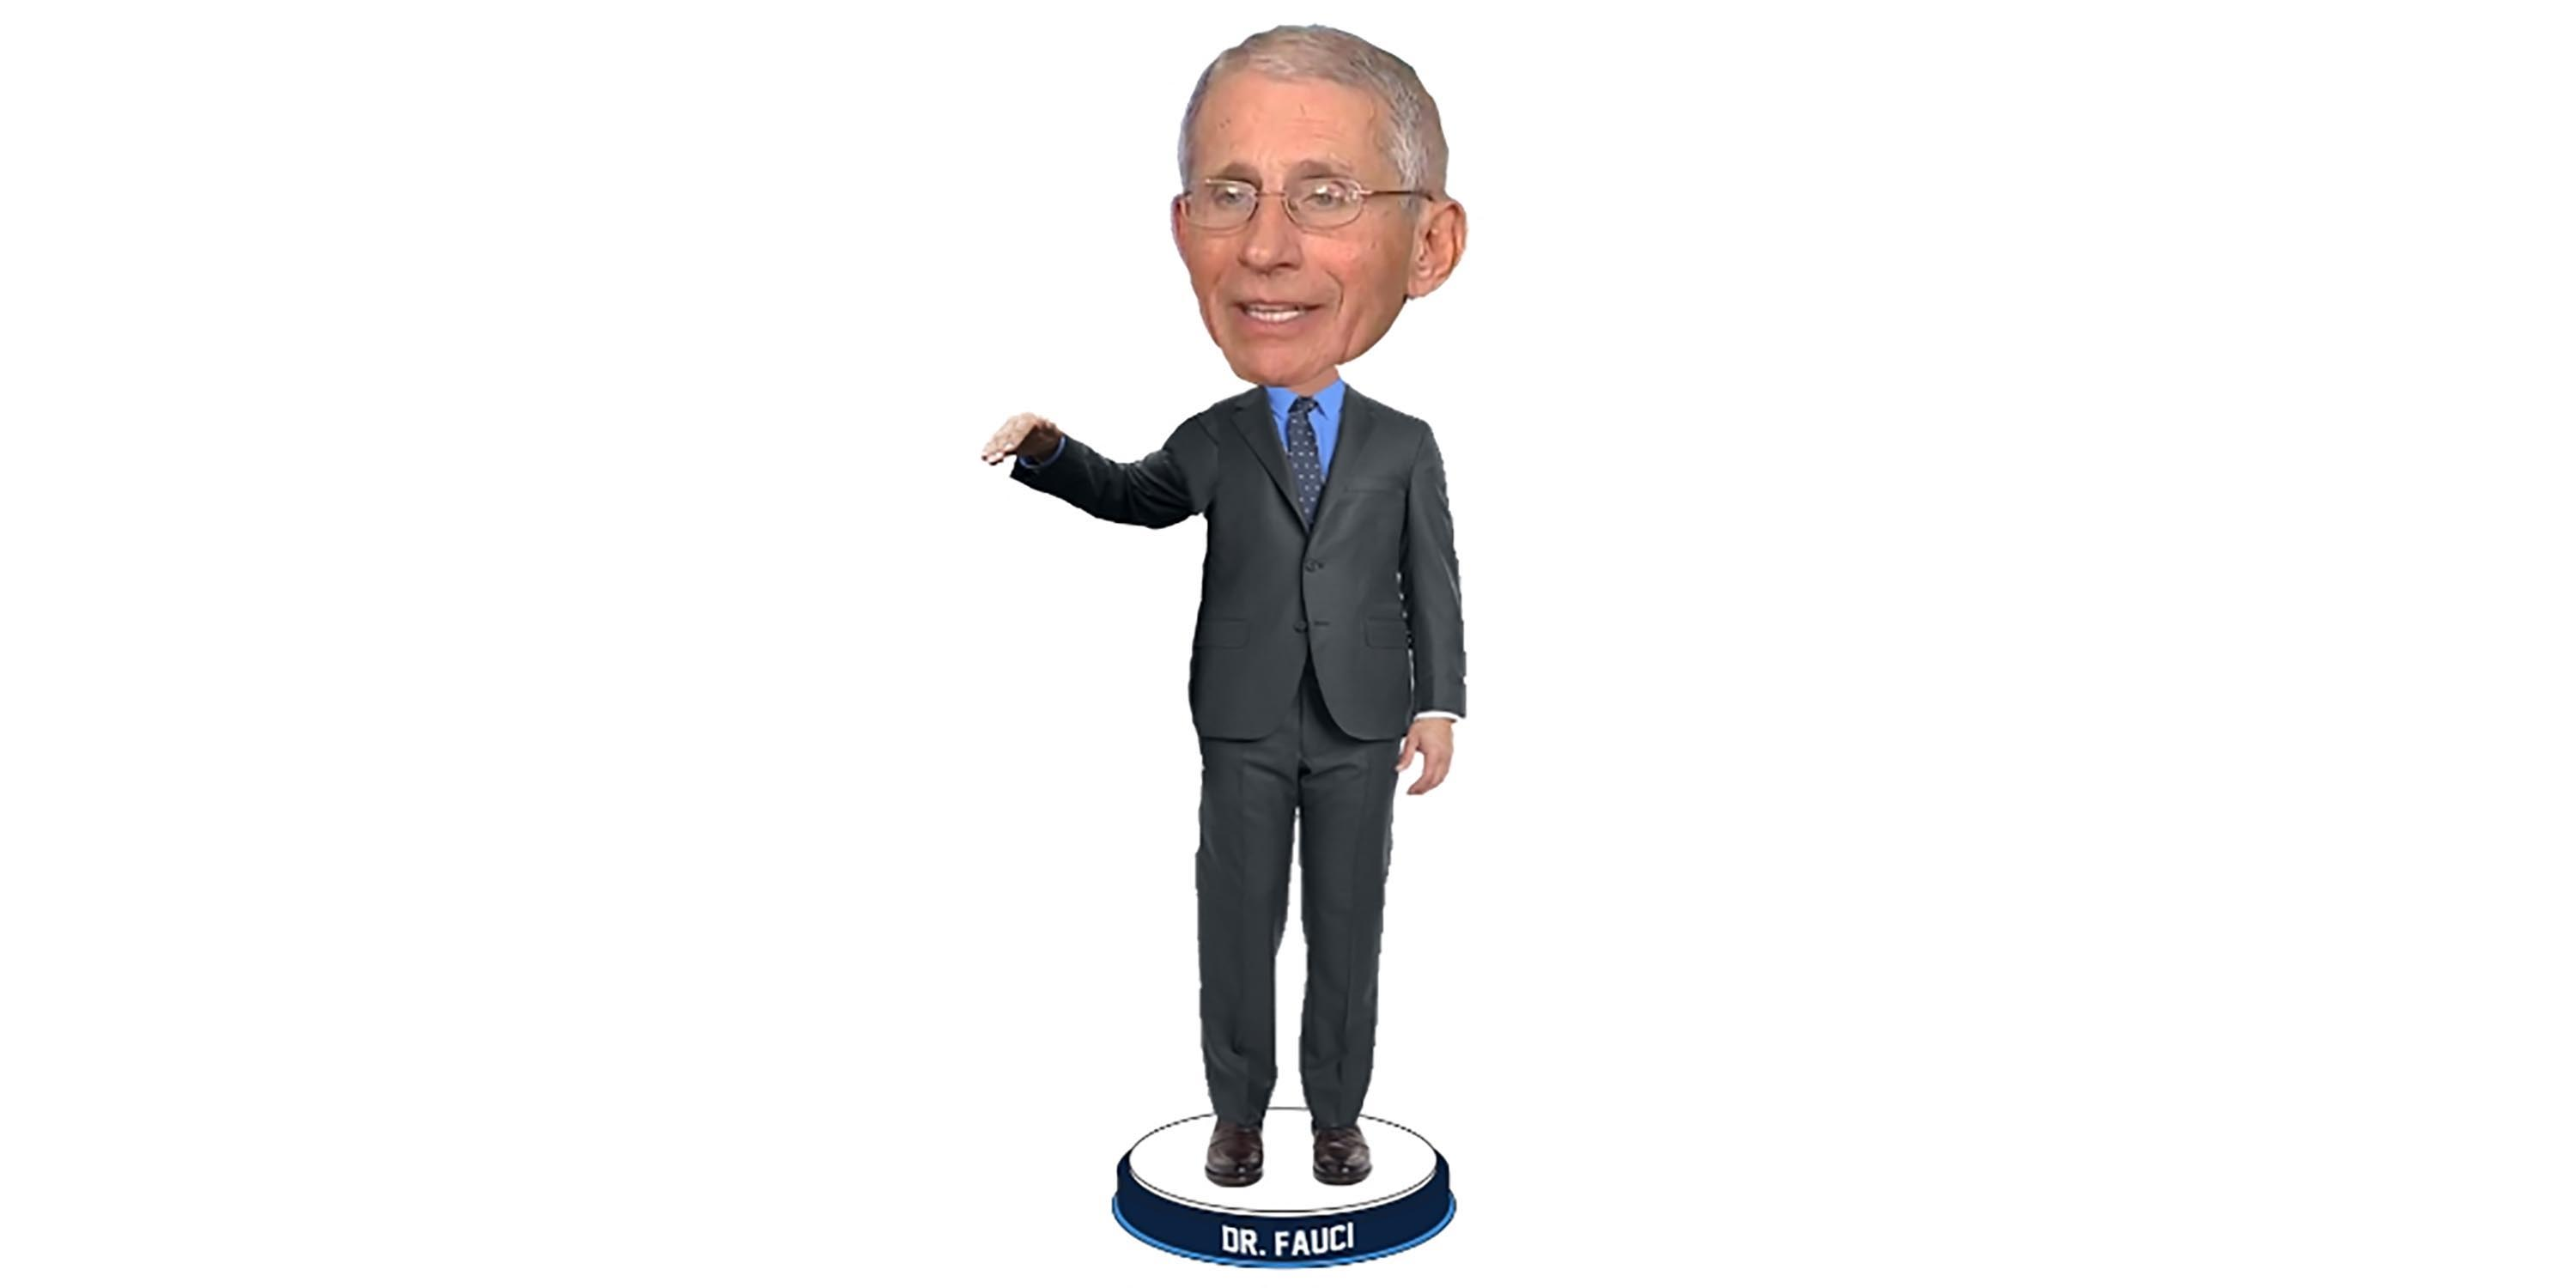 A bobblehead of Dr. Fauci will help pay to produce masks for health workers